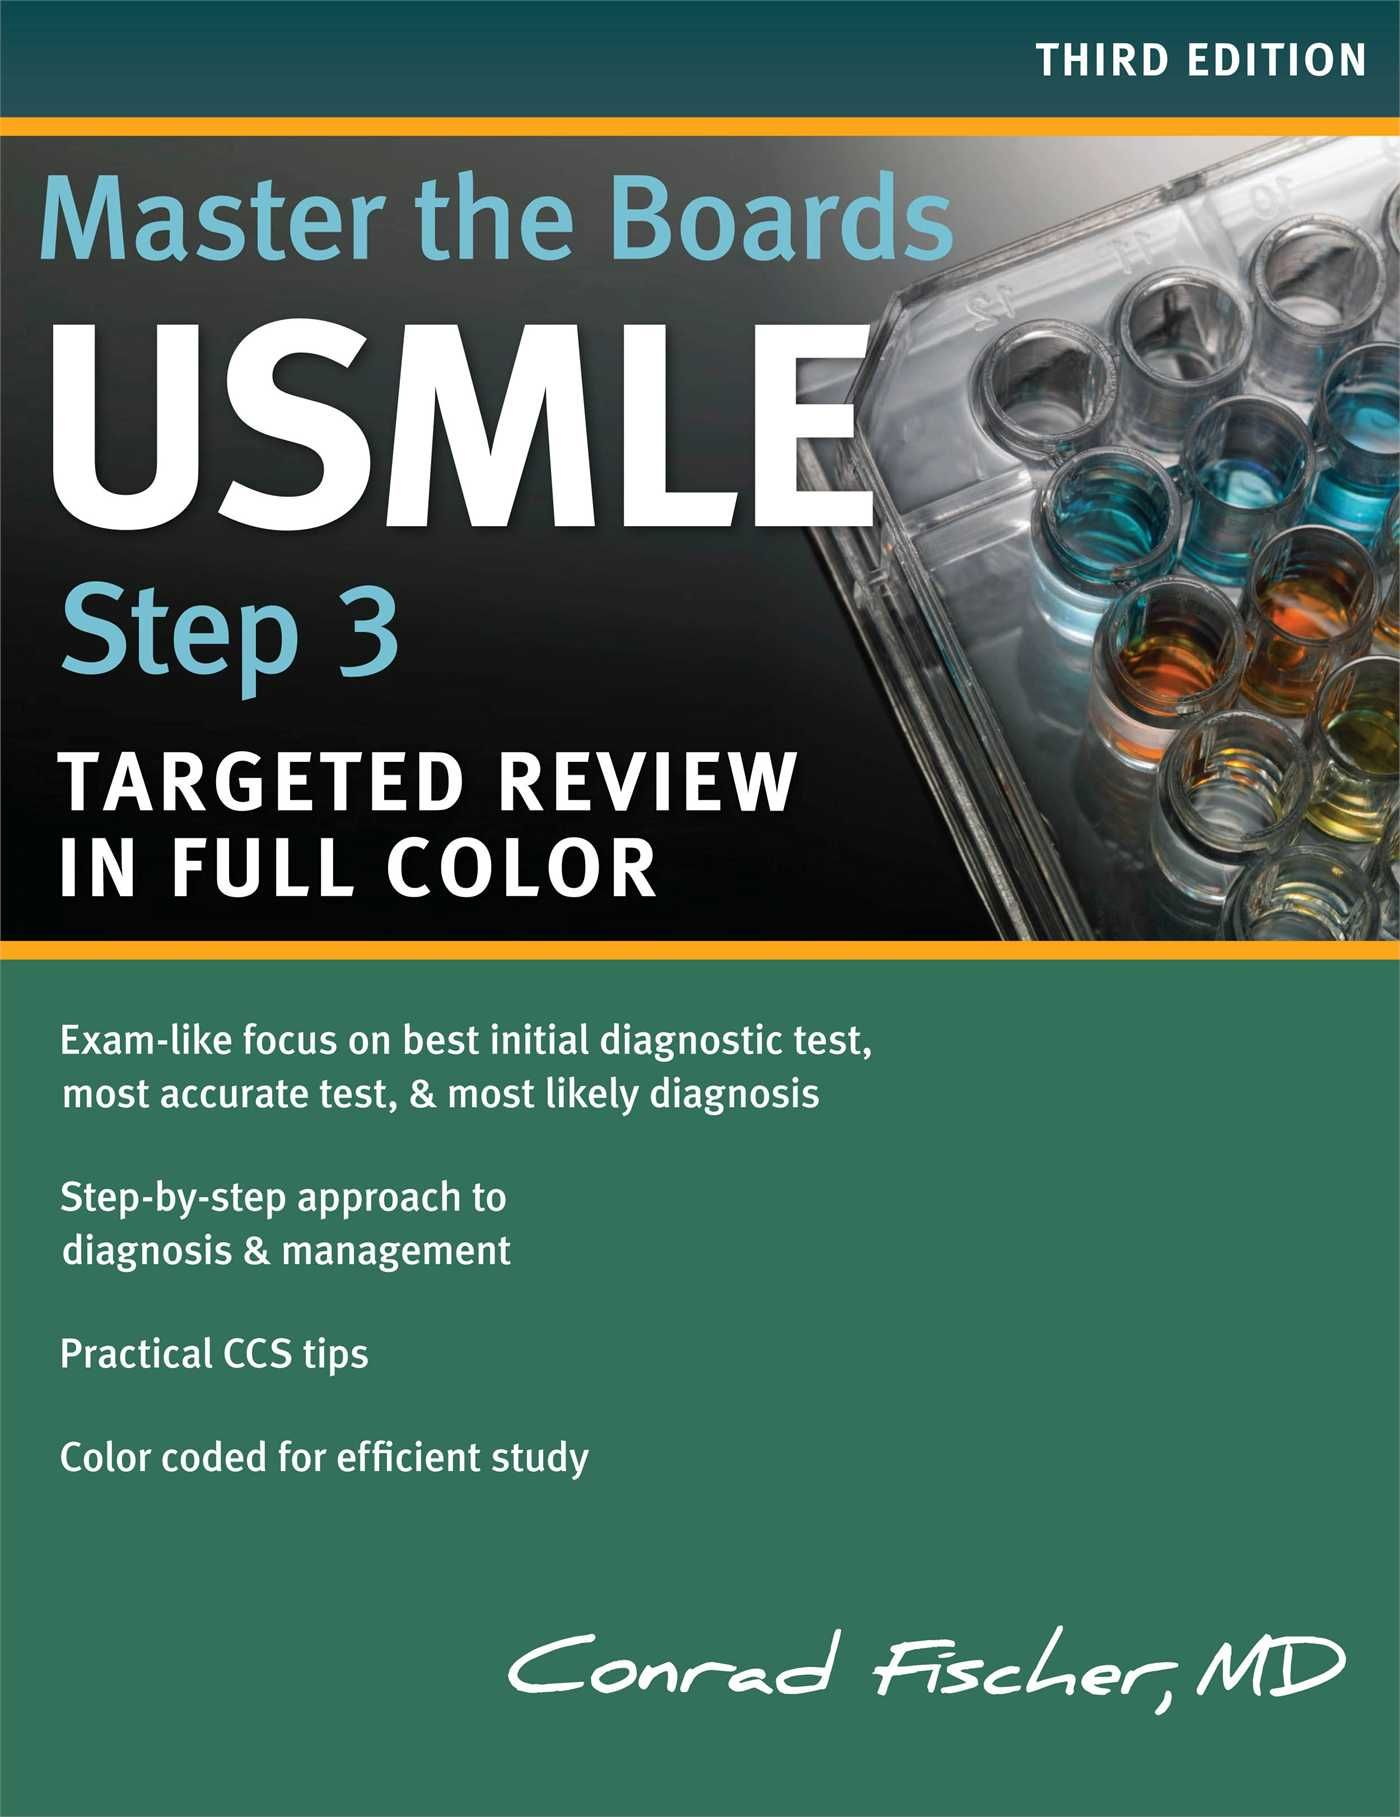 9781618653758 - Master the Boards USMLE Step 3 by Conrad Fischer